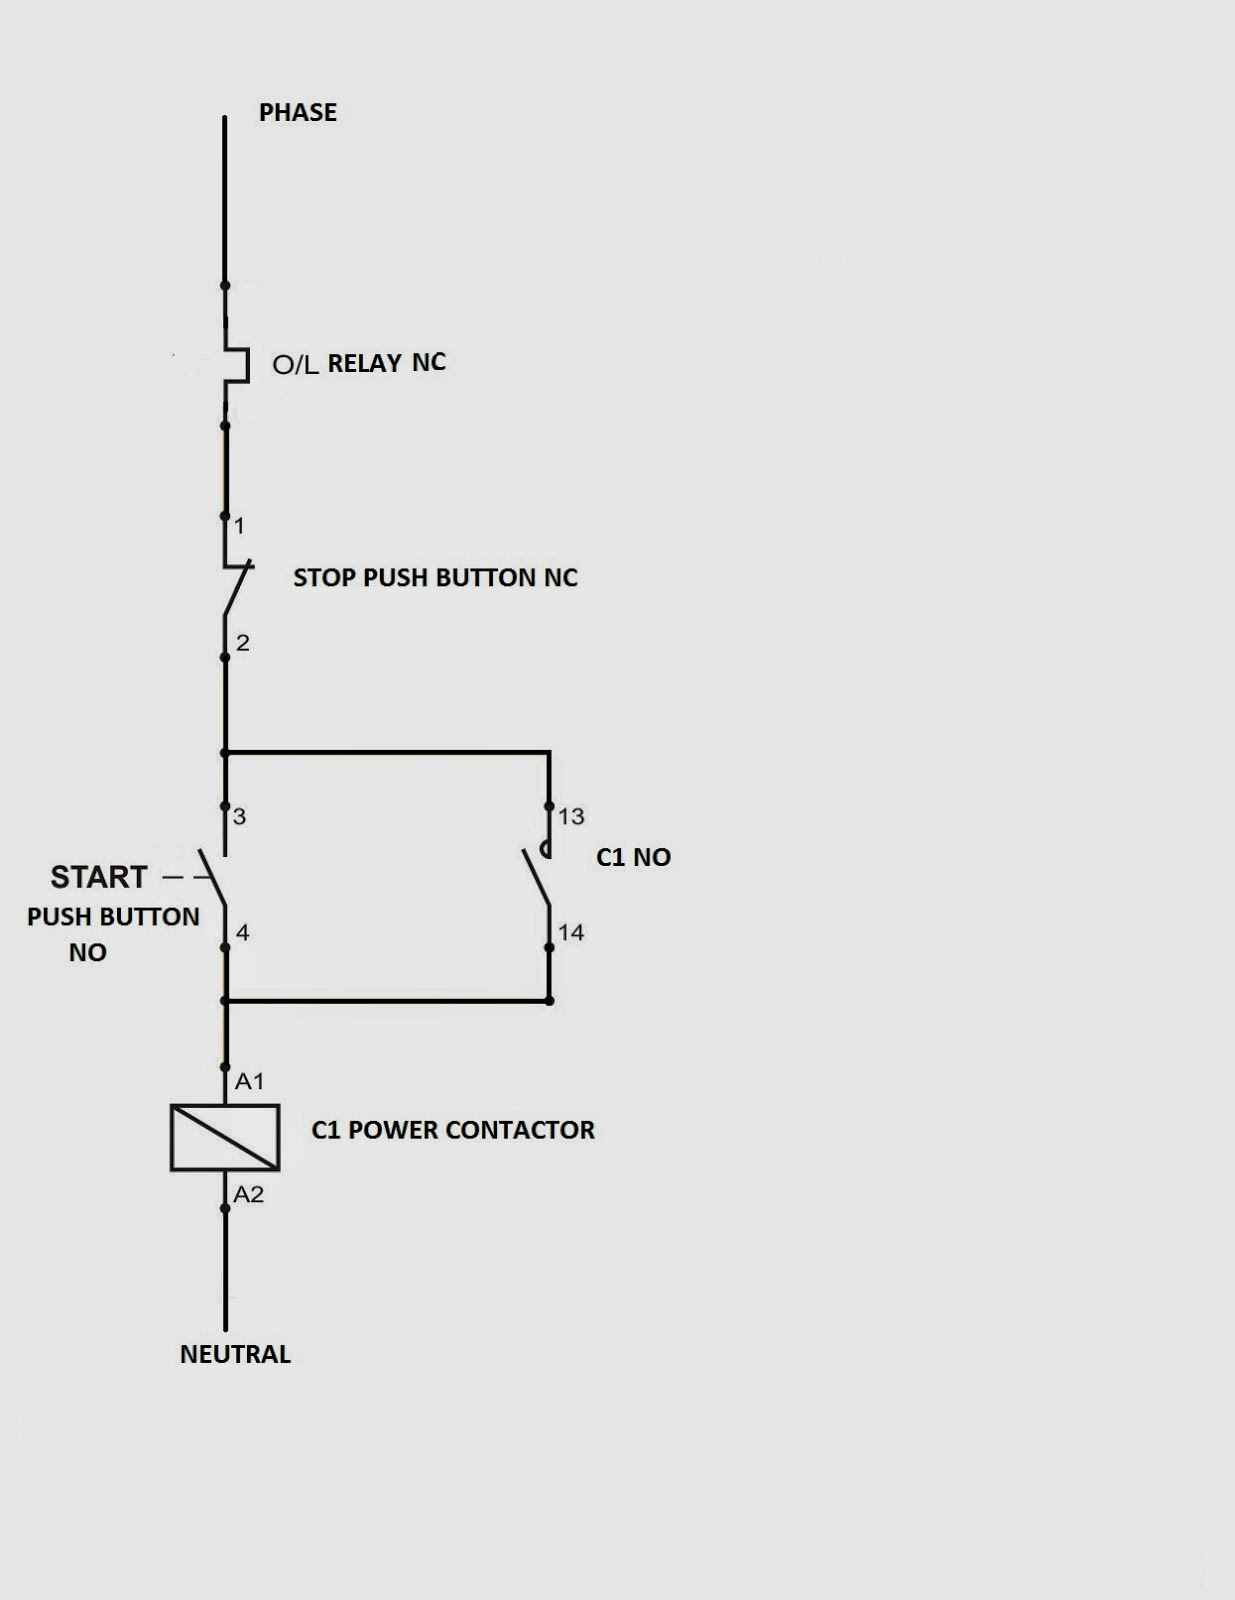 electrical standards direct online dol starter rh electrialstandards blogspot com circuit diagram dol starter wiring diagram direct online starter